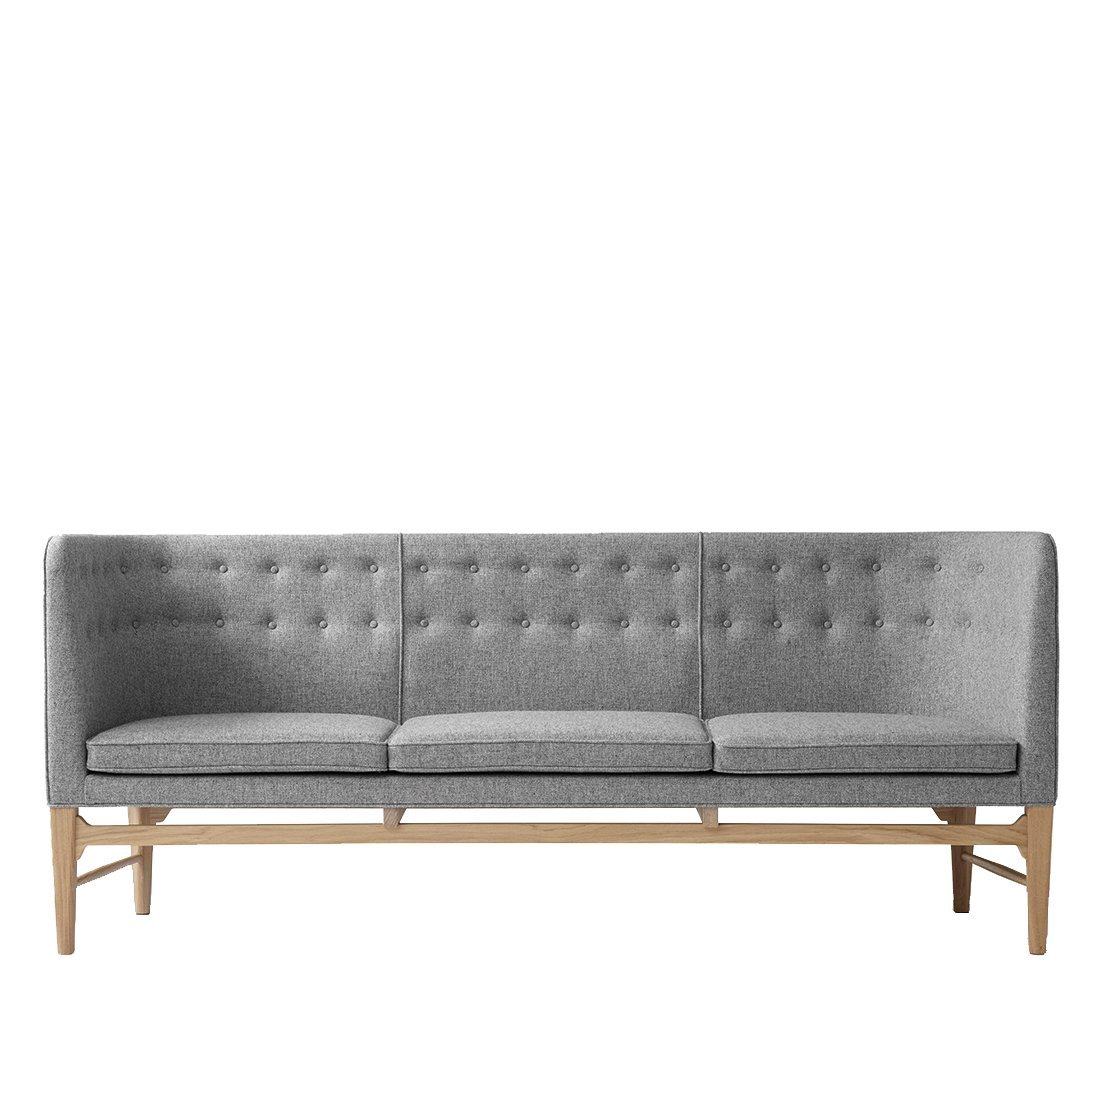 &Tradition Mayor Sofa AJ5 Bank Wit Geolied Eiken Hallingdal 130